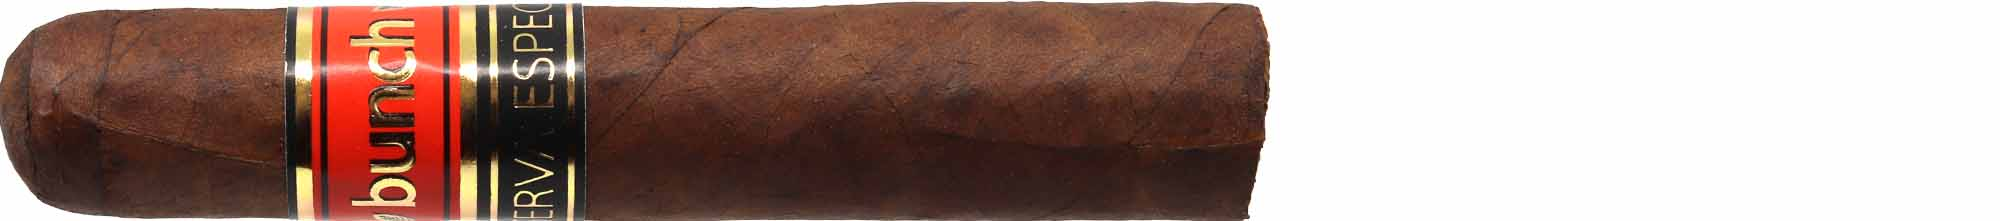 Bunch Reserva Especial Double Robusto